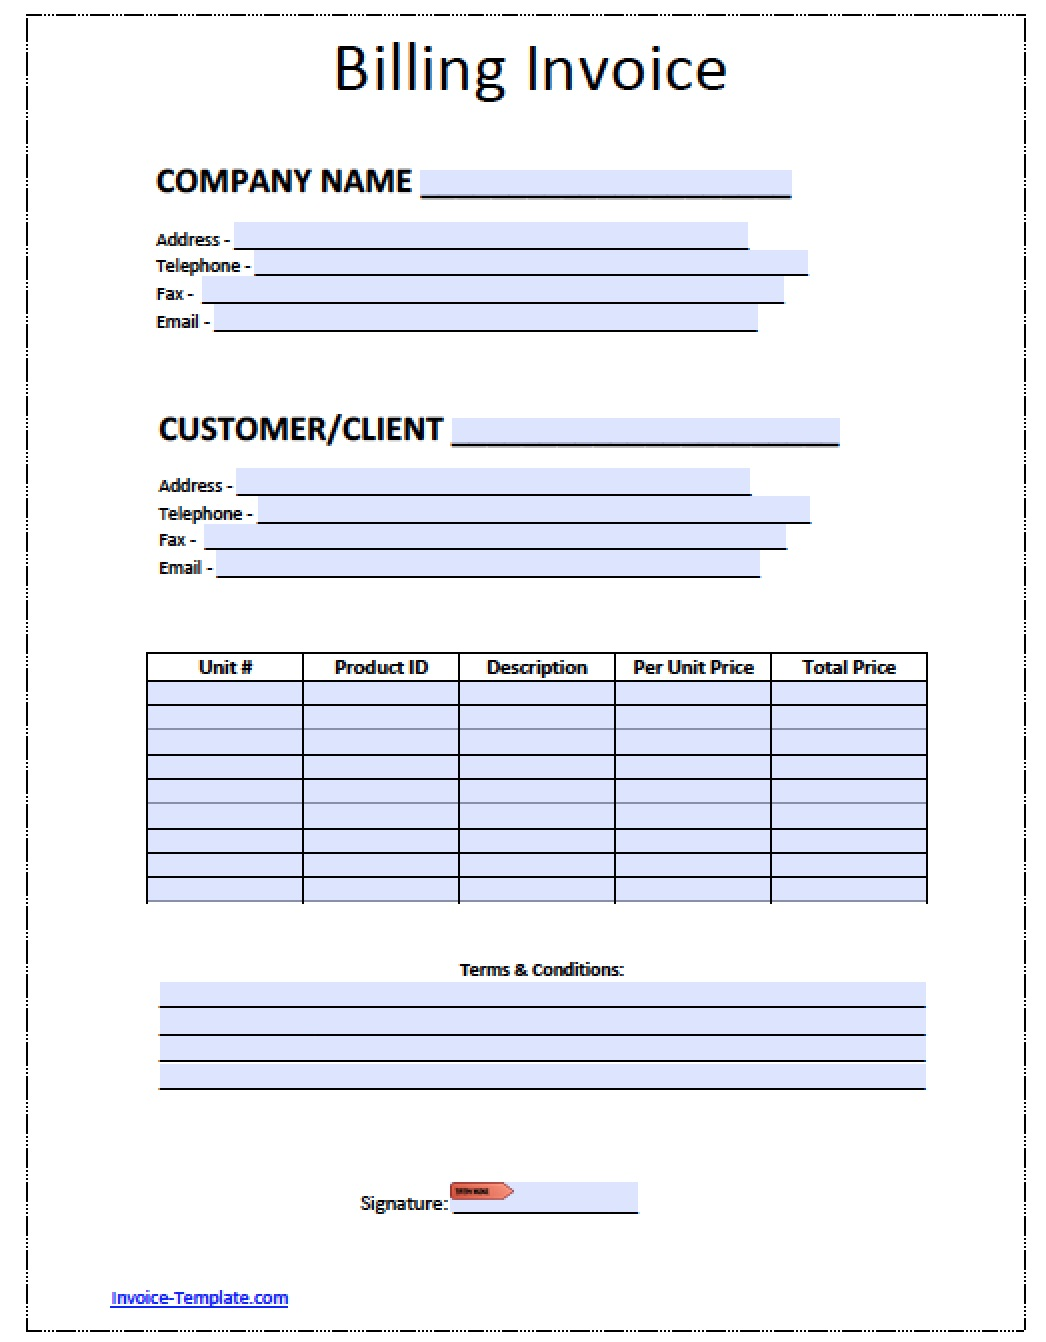 Hucareus  Outstanding Billing Invoice Invoices Faq U Cloudflare Support Billing  With Handsome Free Billing Invoice Template  Excel  Pdf  Word Doc  Billing With Delectable Read Receipt In Outlook Also Shipping Receipt In Addition Receipt App Android And Acknowledgment Of Receipt As Well As Template Rent Receipt Additionally Fake Taxi Receipt From Happytomco With Hucareus  Handsome Billing Invoice Invoices Faq U Cloudflare Support Billing  With Delectable Free Billing Invoice Template  Excel  Pdf  Word Doc  Billing And Outstanding Read Receipt In Outlook Also Shipping Receipt In Addition Receipt App Android From Happytomco